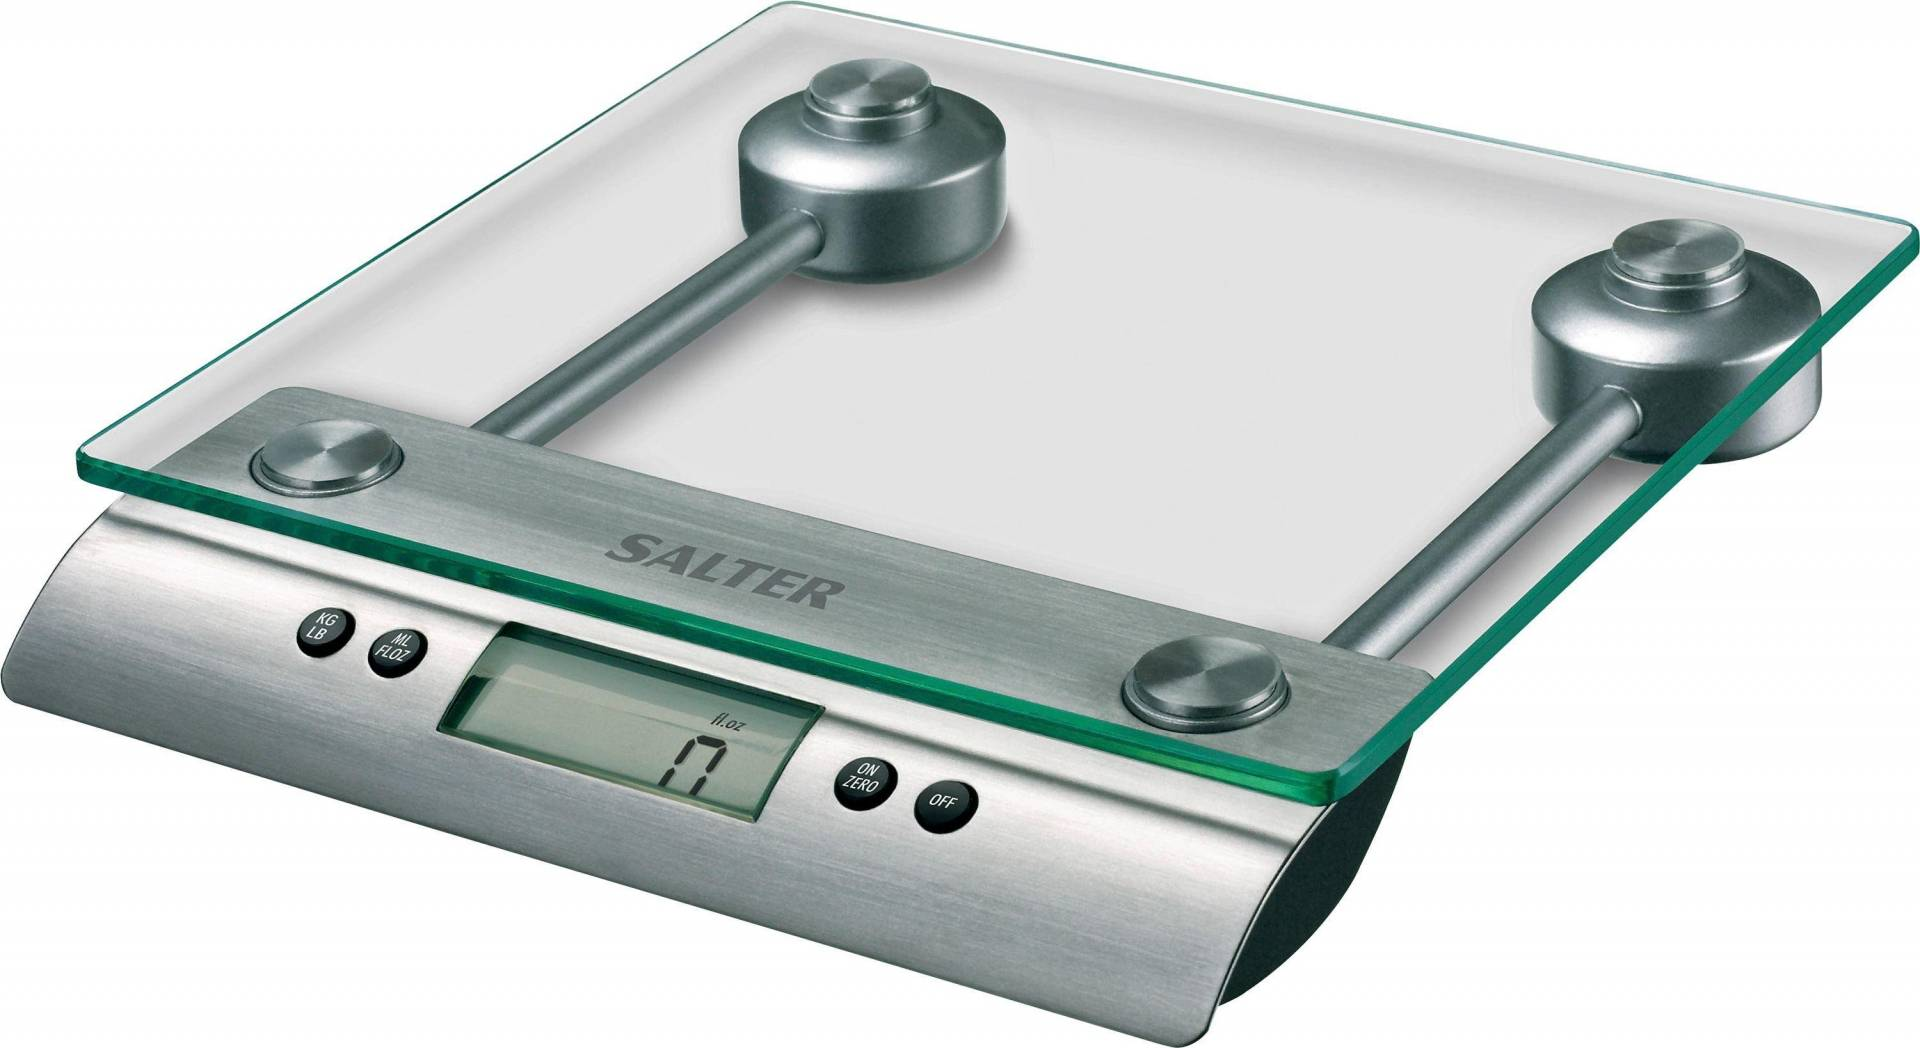 Salter - Glass Kitchen Scale from Salter